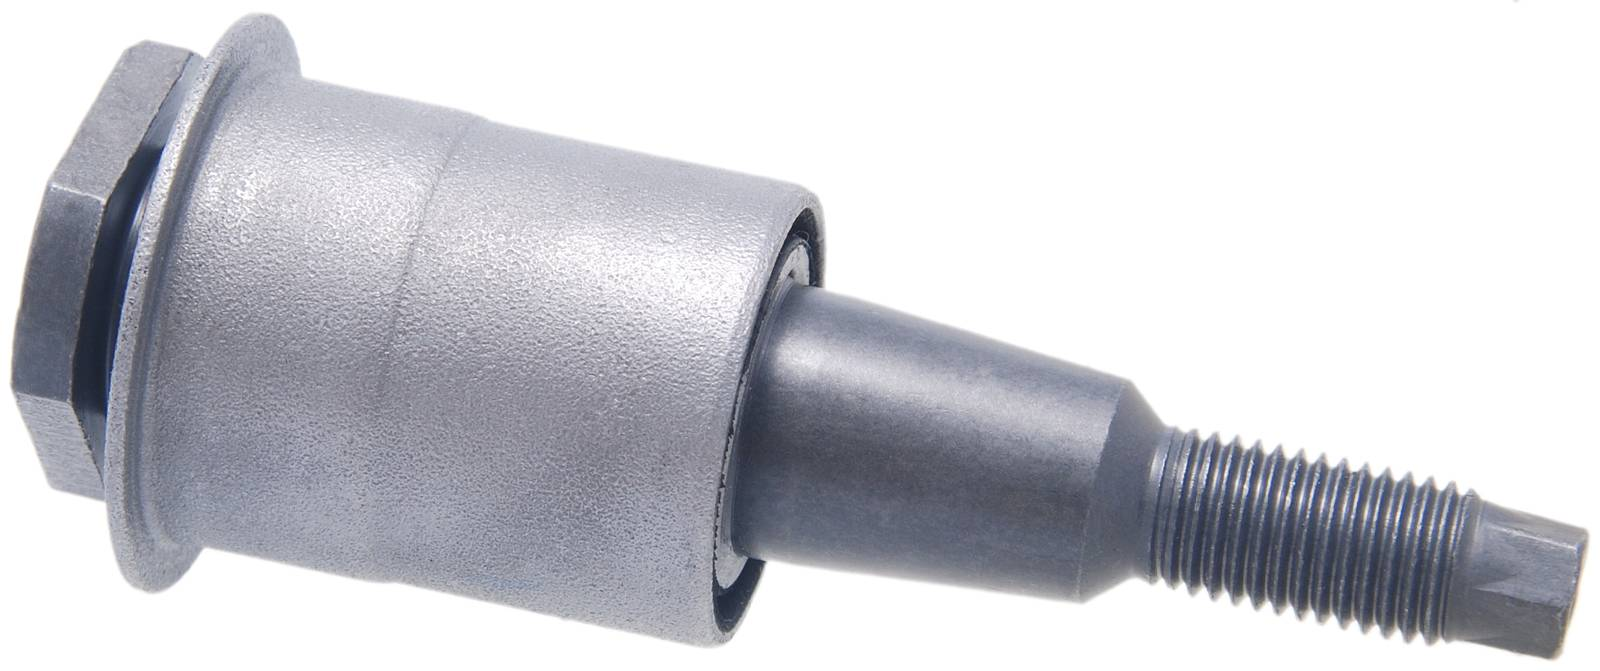 ARM BUSHING FRONT LOWER ARM - OEM 15921070